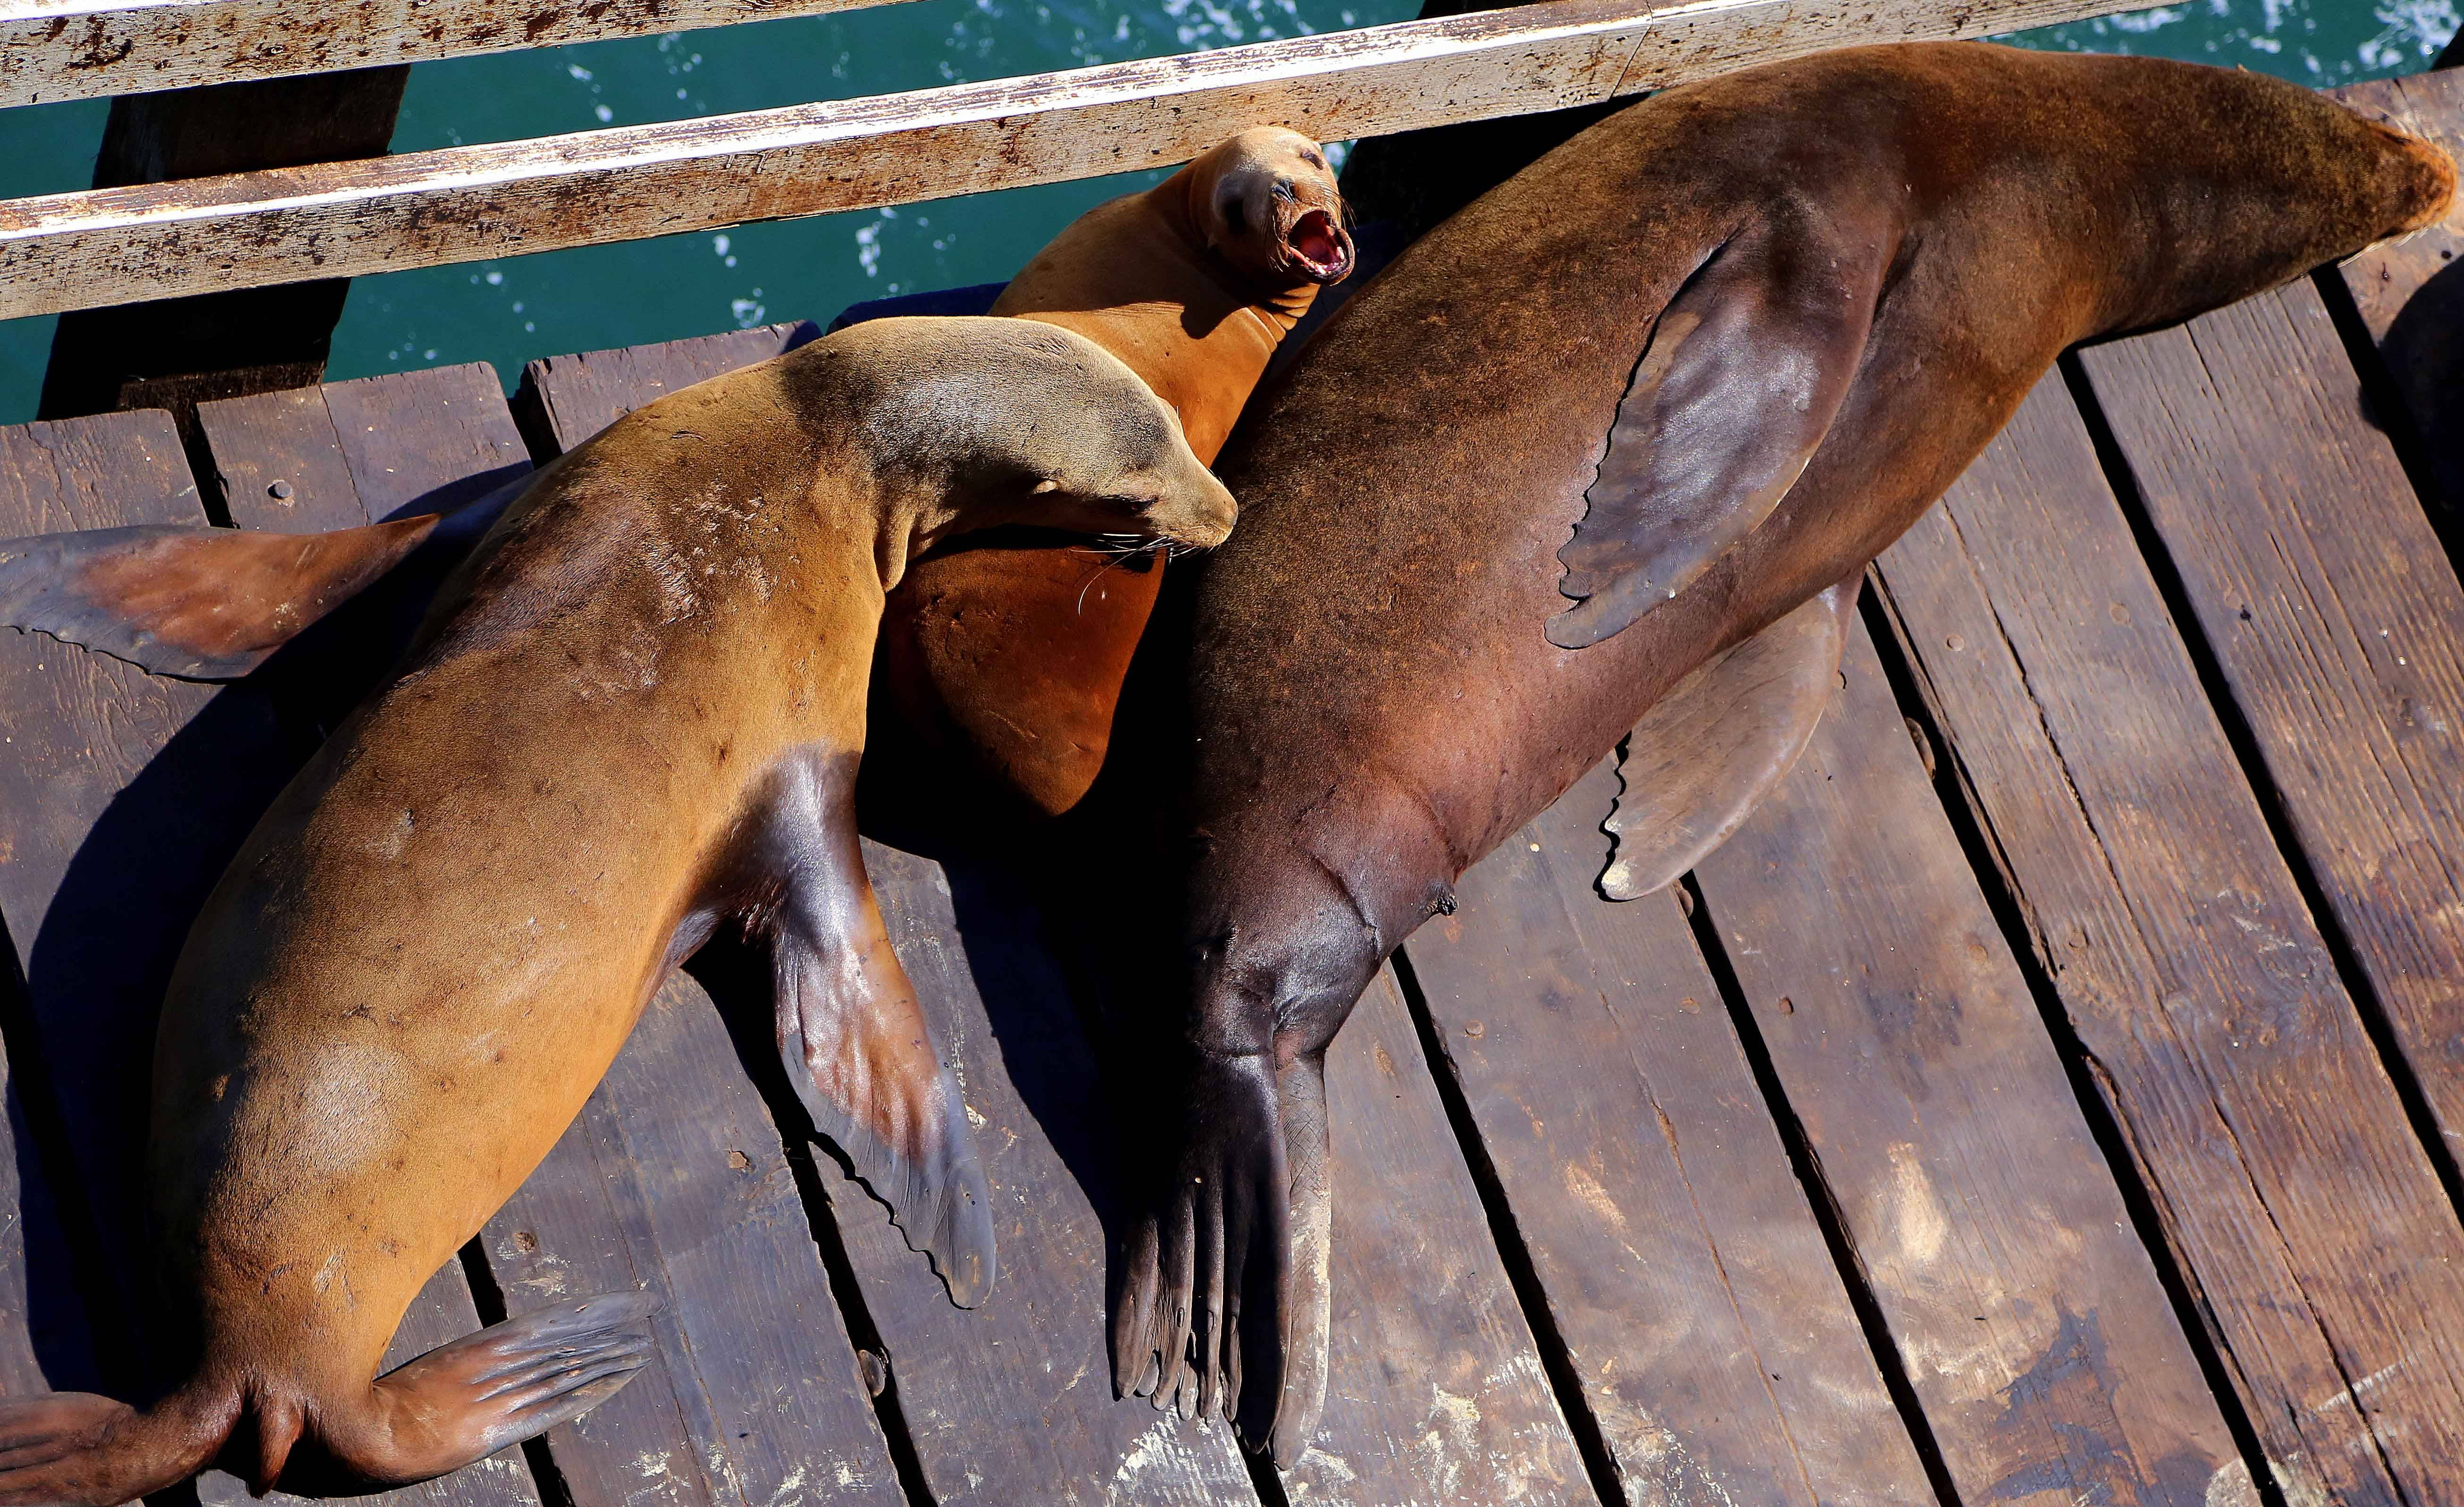 Sea lions enjoy a nap on the Santa Cruz Municipal Wharf. Watching wildlife is one of the free ways to enjoy Santa Cruz.